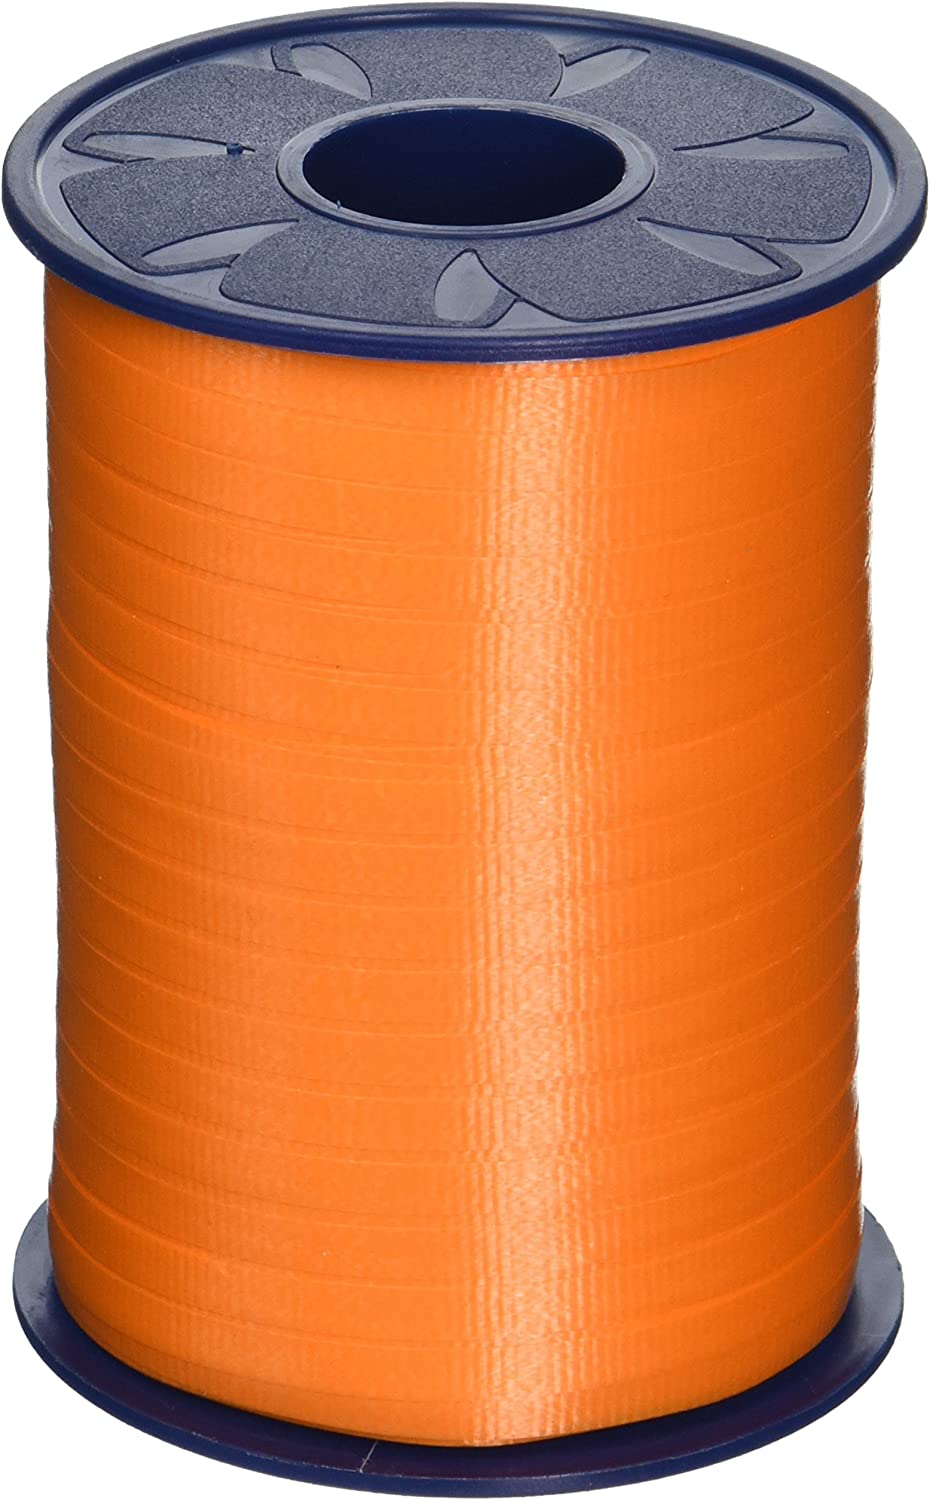 Morex Poly Crimped Curling Ribbon, 3/16-Inch by 500-Yard, Orange, 500-Yard, 1-Pack: Arts, Crafts & Sewing